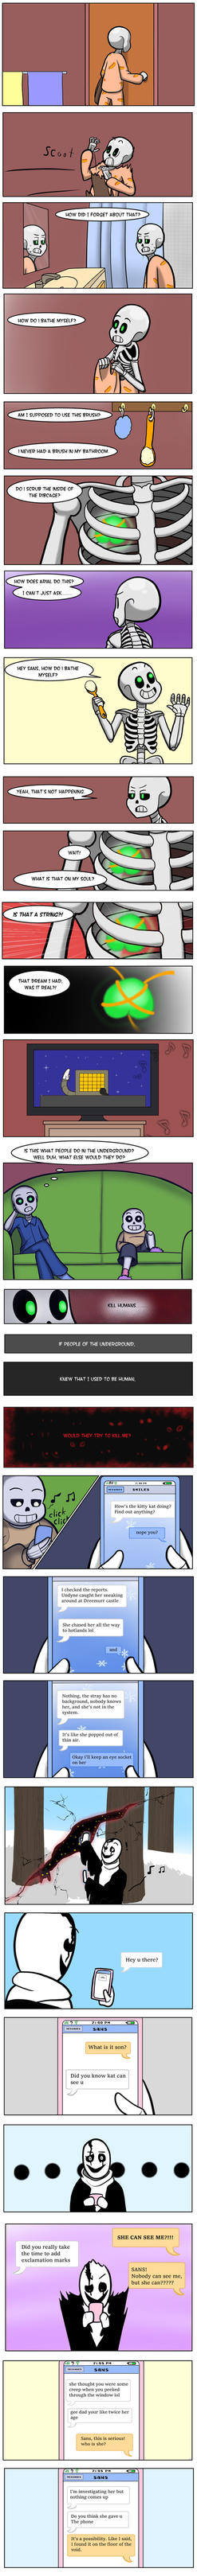 Undertale Green Chapter 3 Page 27 by FlamingReaperComic